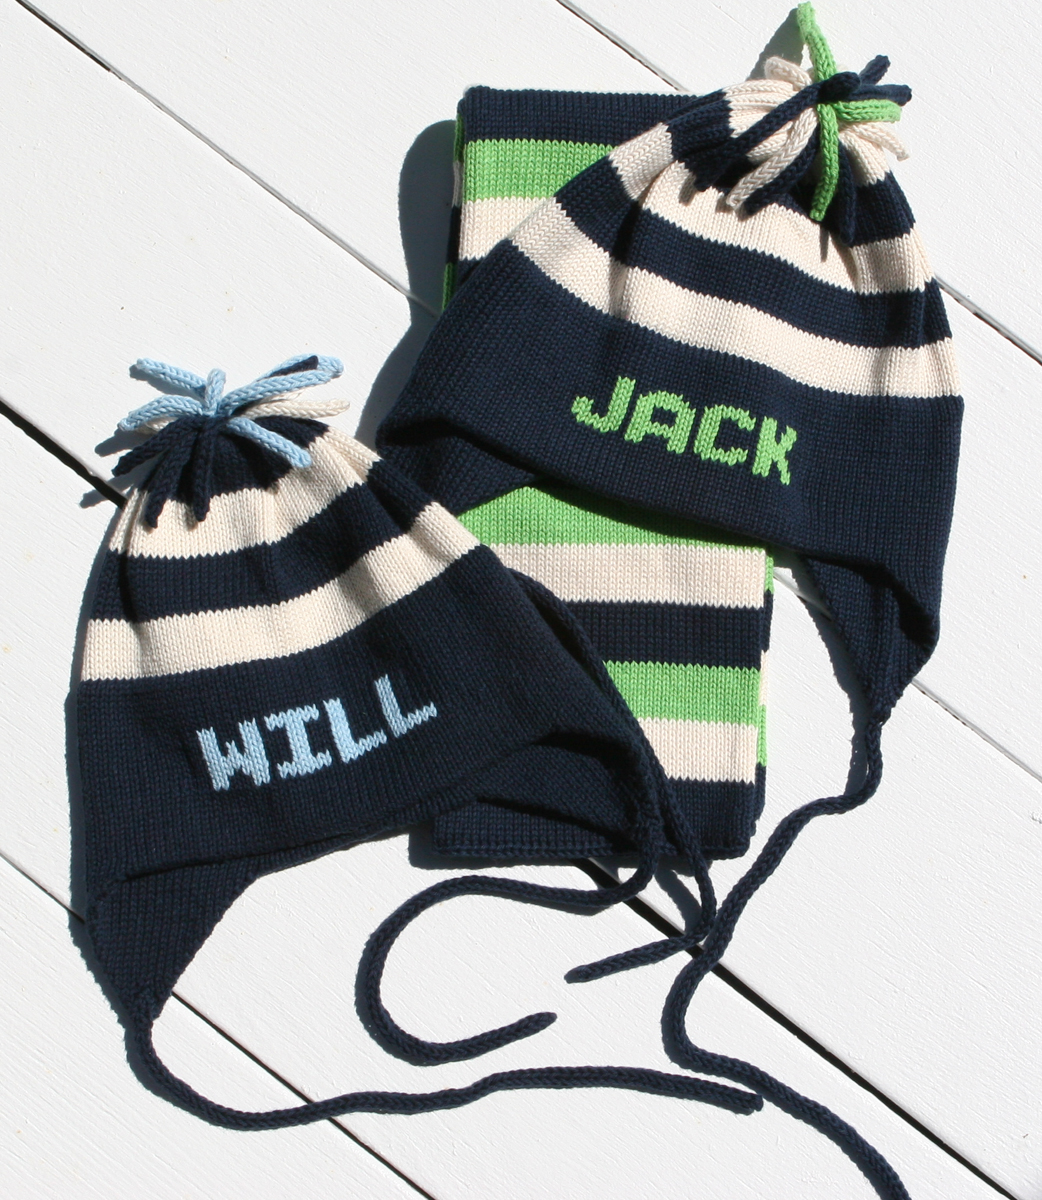 Personalized Winter Hats - Hat HD Image Ukjugs.Org 8440d38bf62